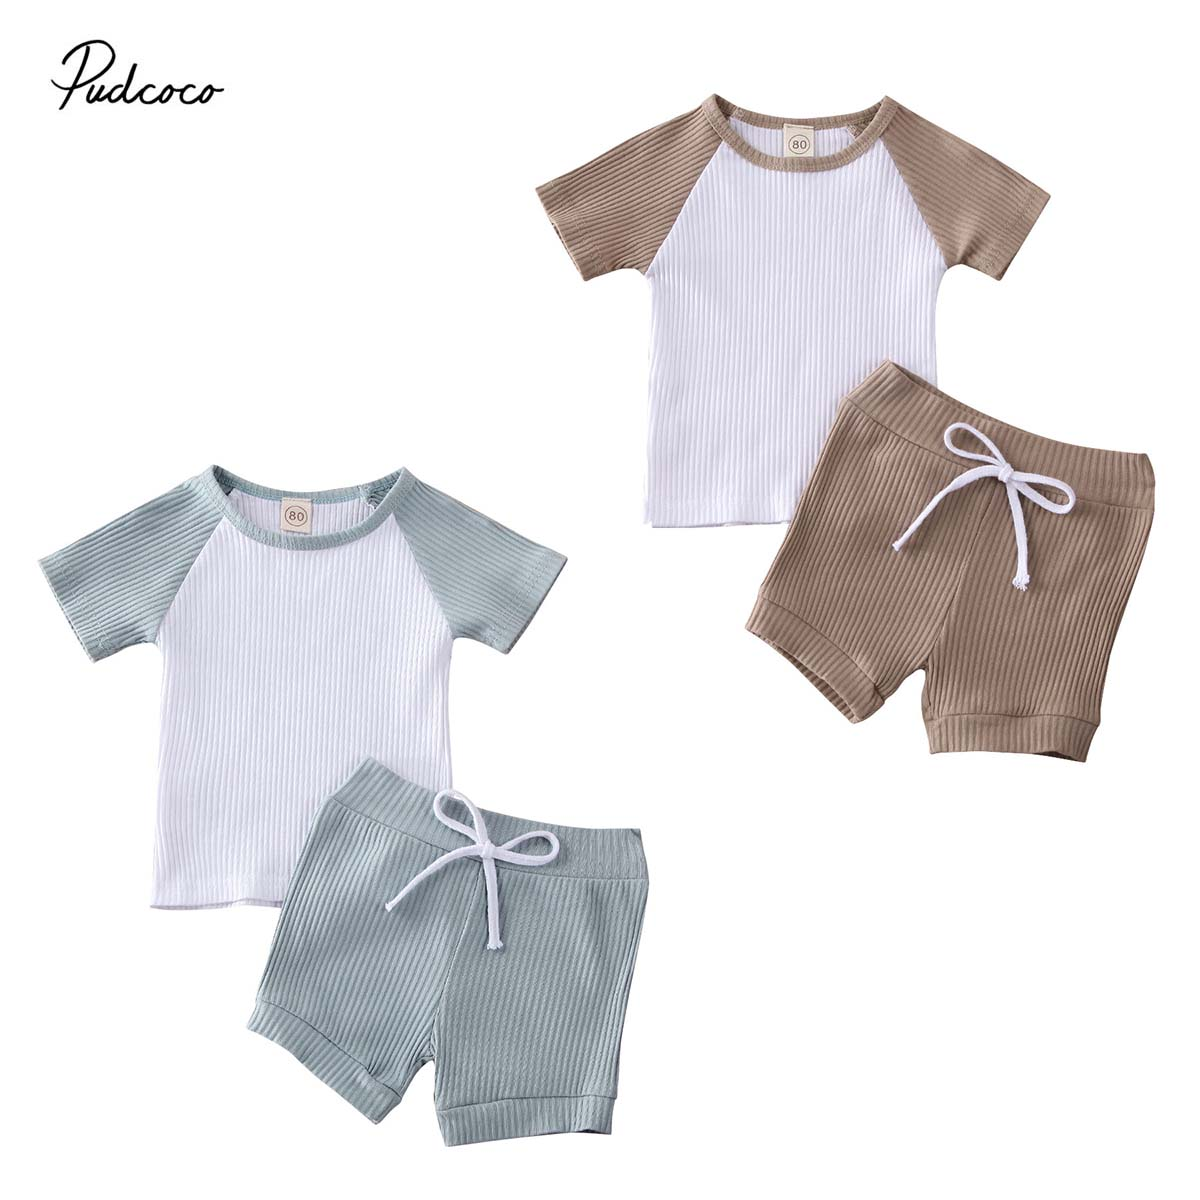 2020 Baby Summer Clothing 2PCS Toddler Kids Baby Boys Girls Short Sleeve Shirt Shorts Pants Clothes Ribbed Patchwork Outfit